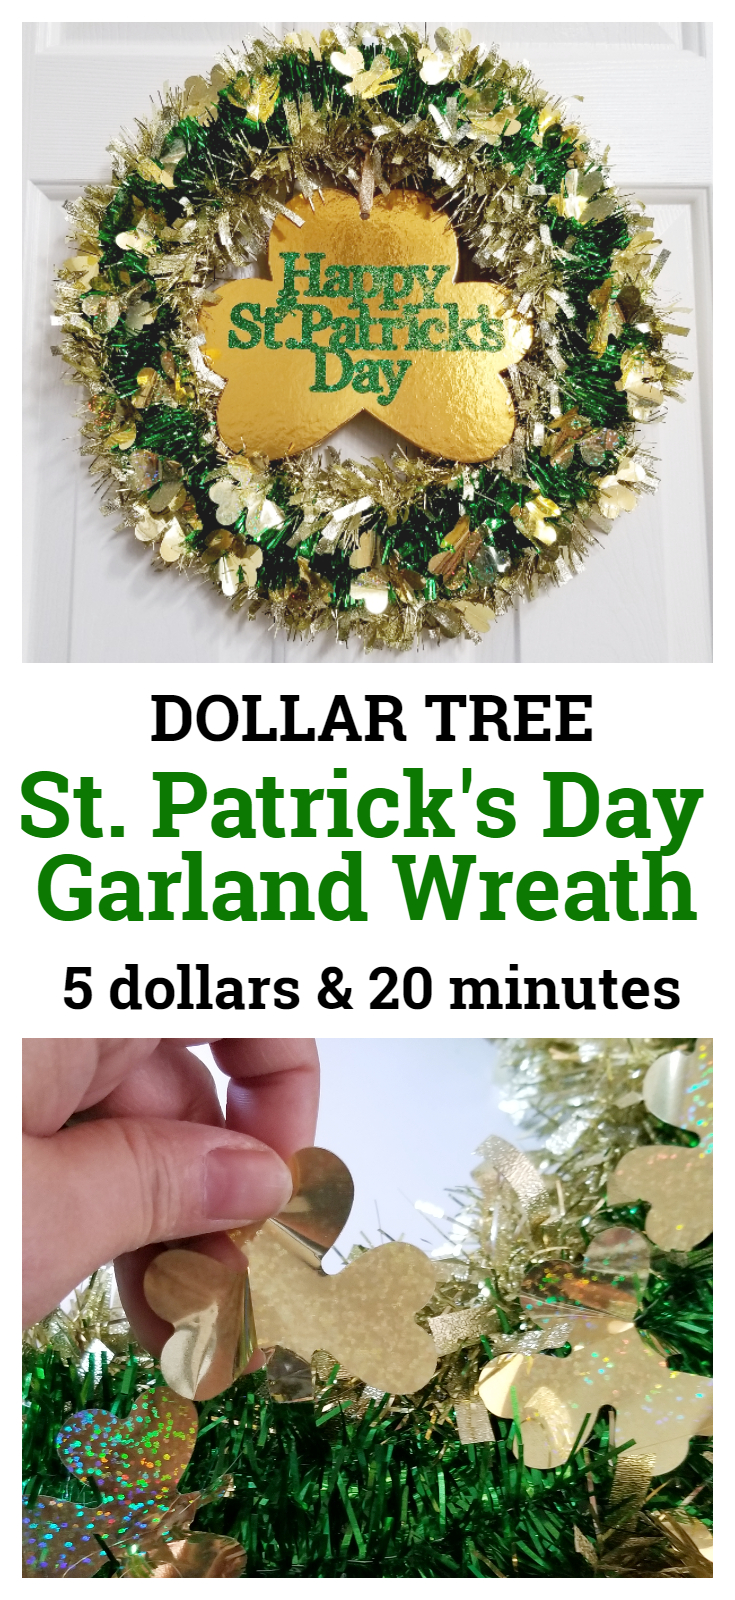 Dollar Tree St. Patrick's Day Garland Wreath with gold clover center